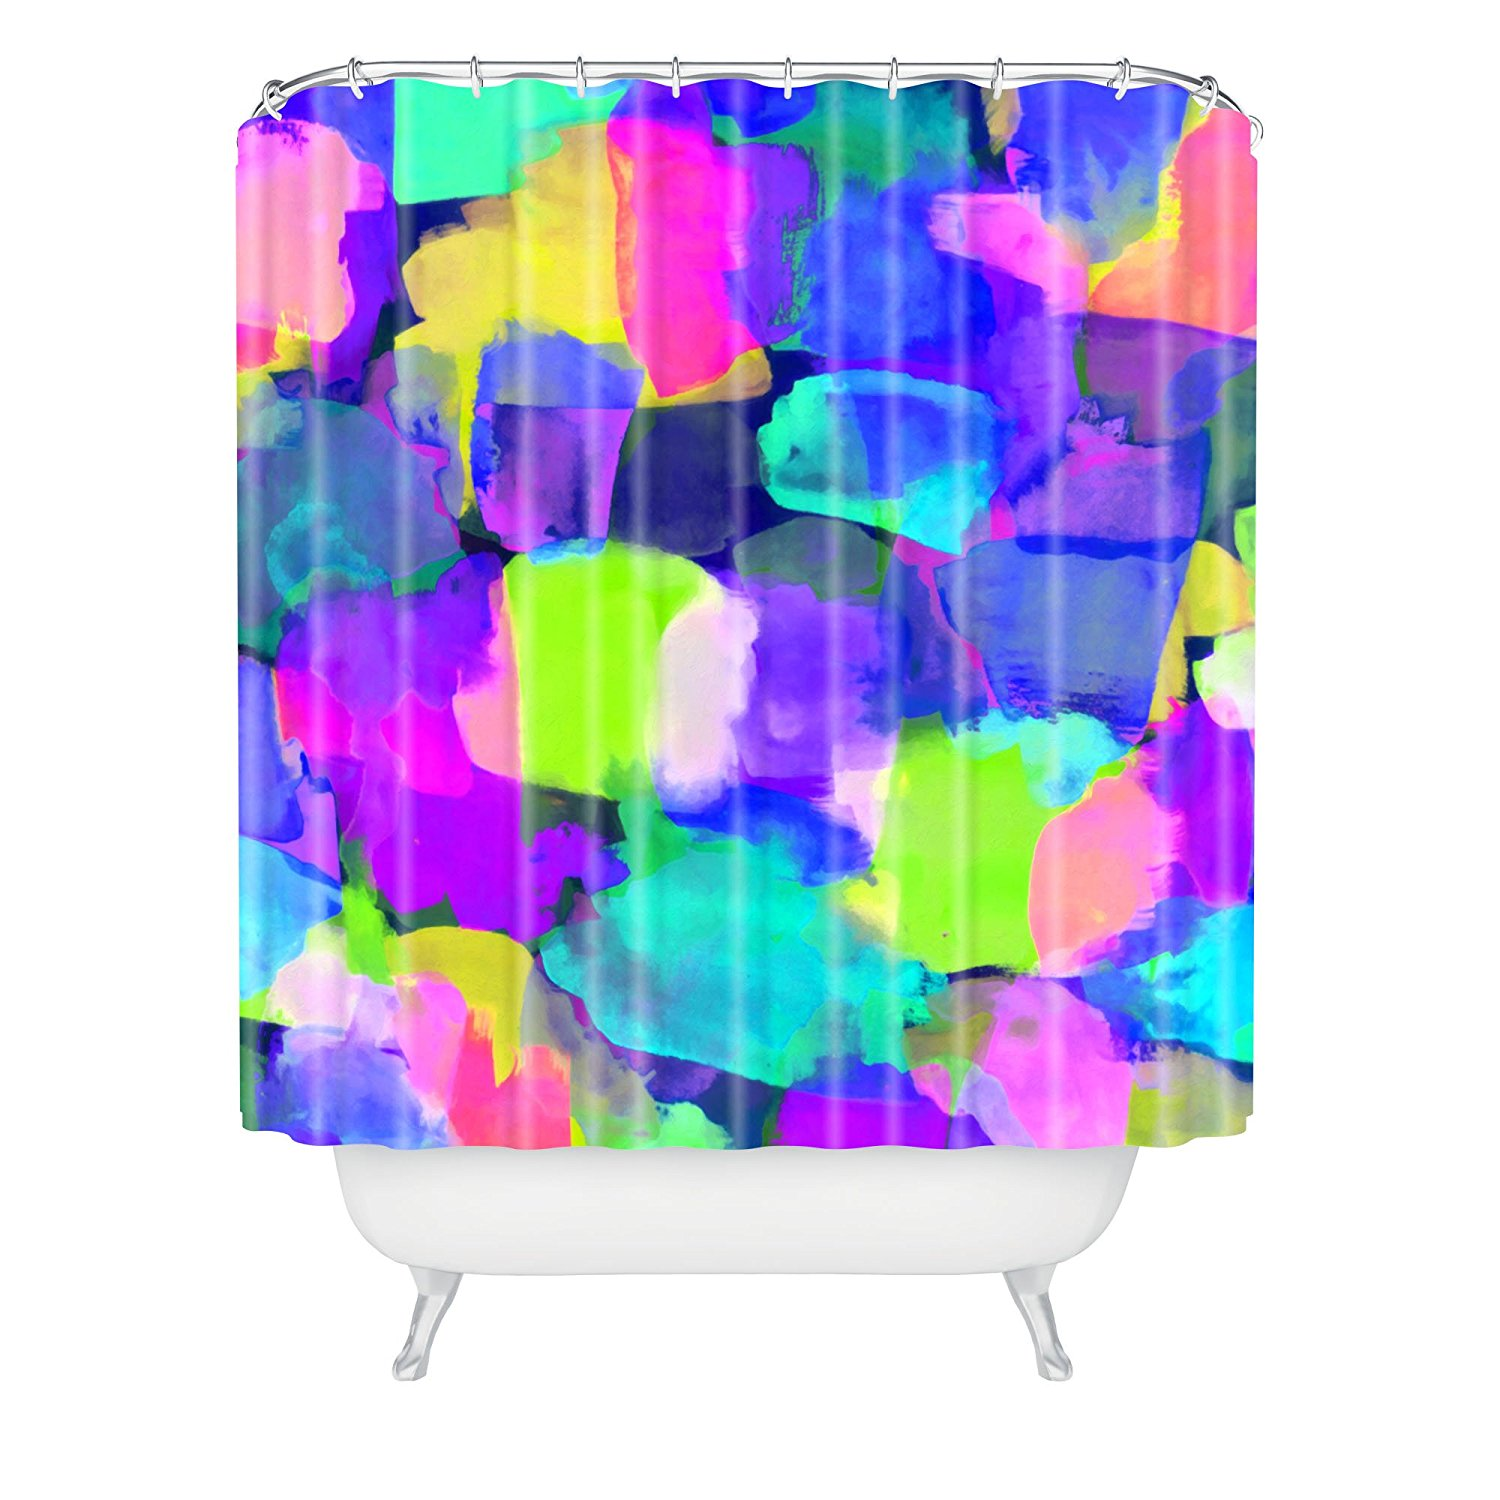 holly sharpe tropical girl shower curtain 69 by 72inchchina mainland